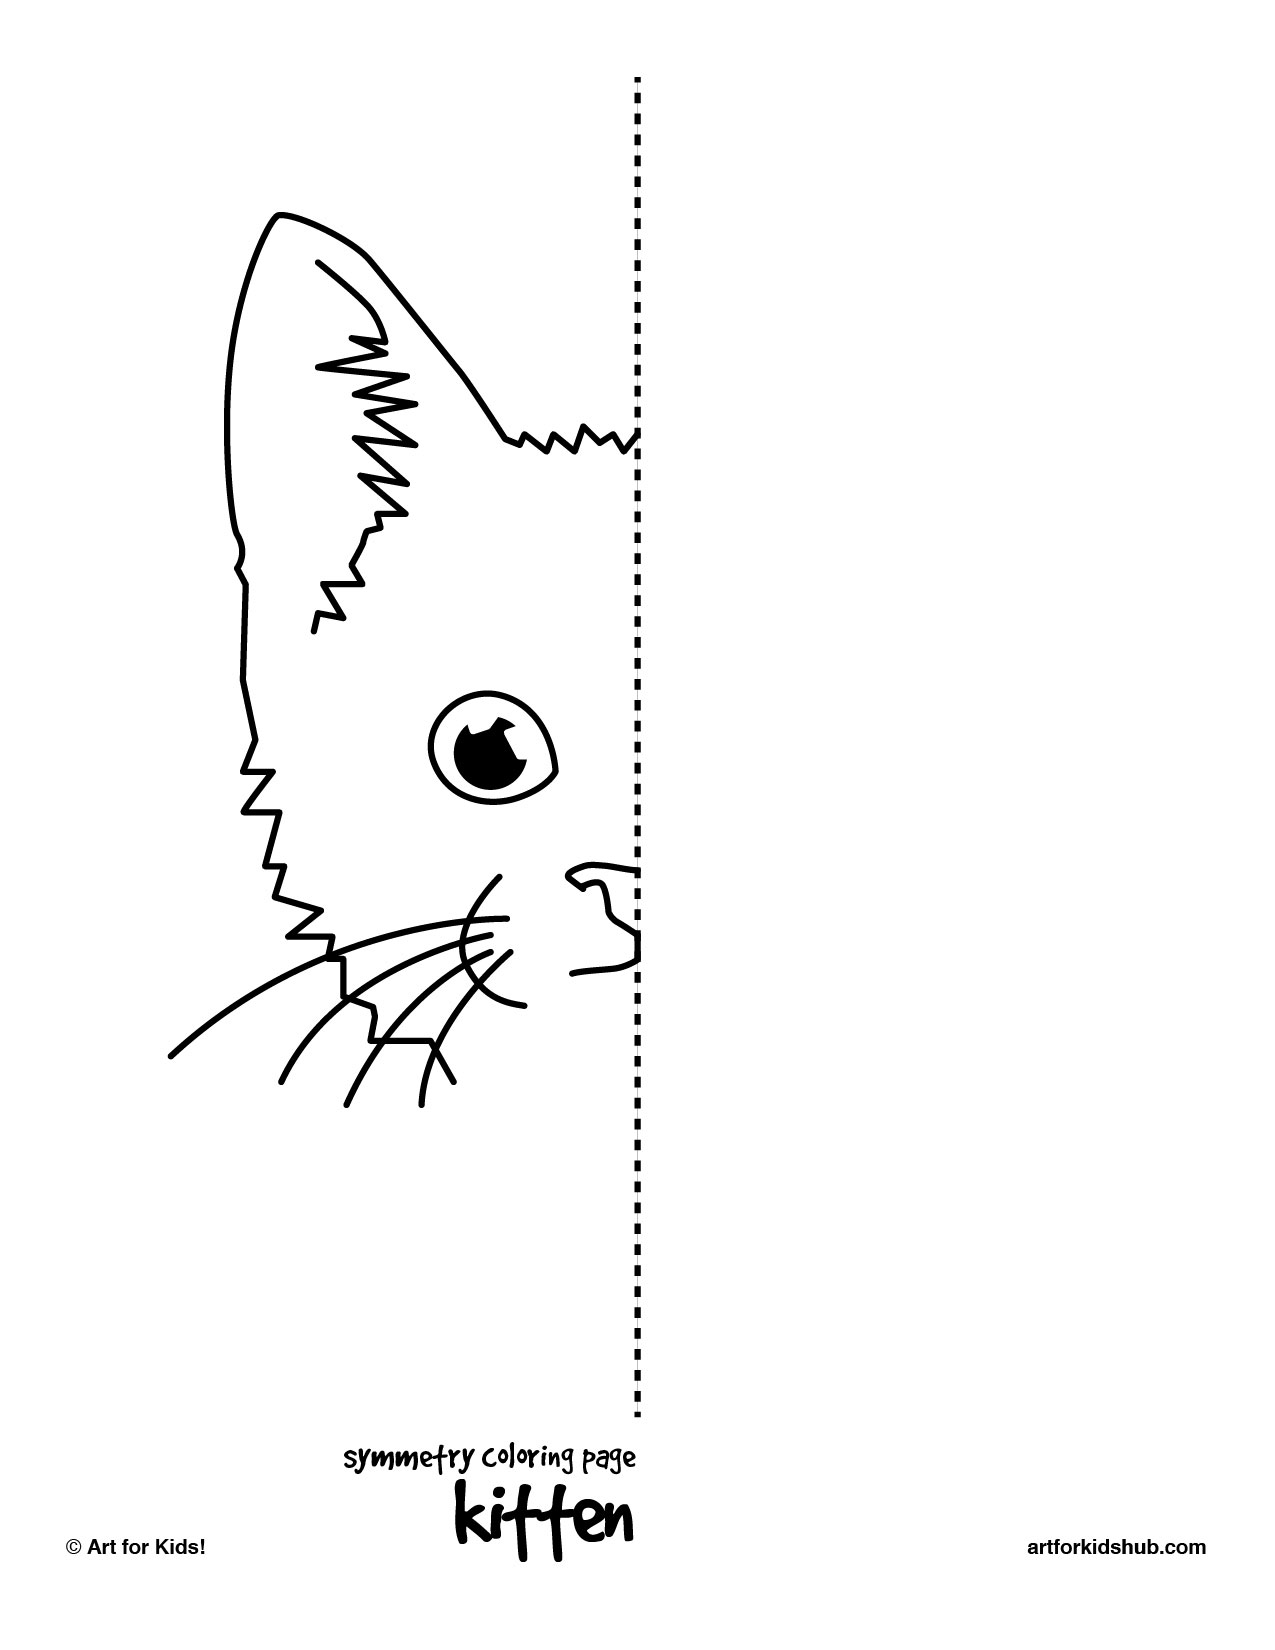 symmetry colouring sheets 10 free coloring pages bug symmetry art for kids hub sheets symmetry colouring